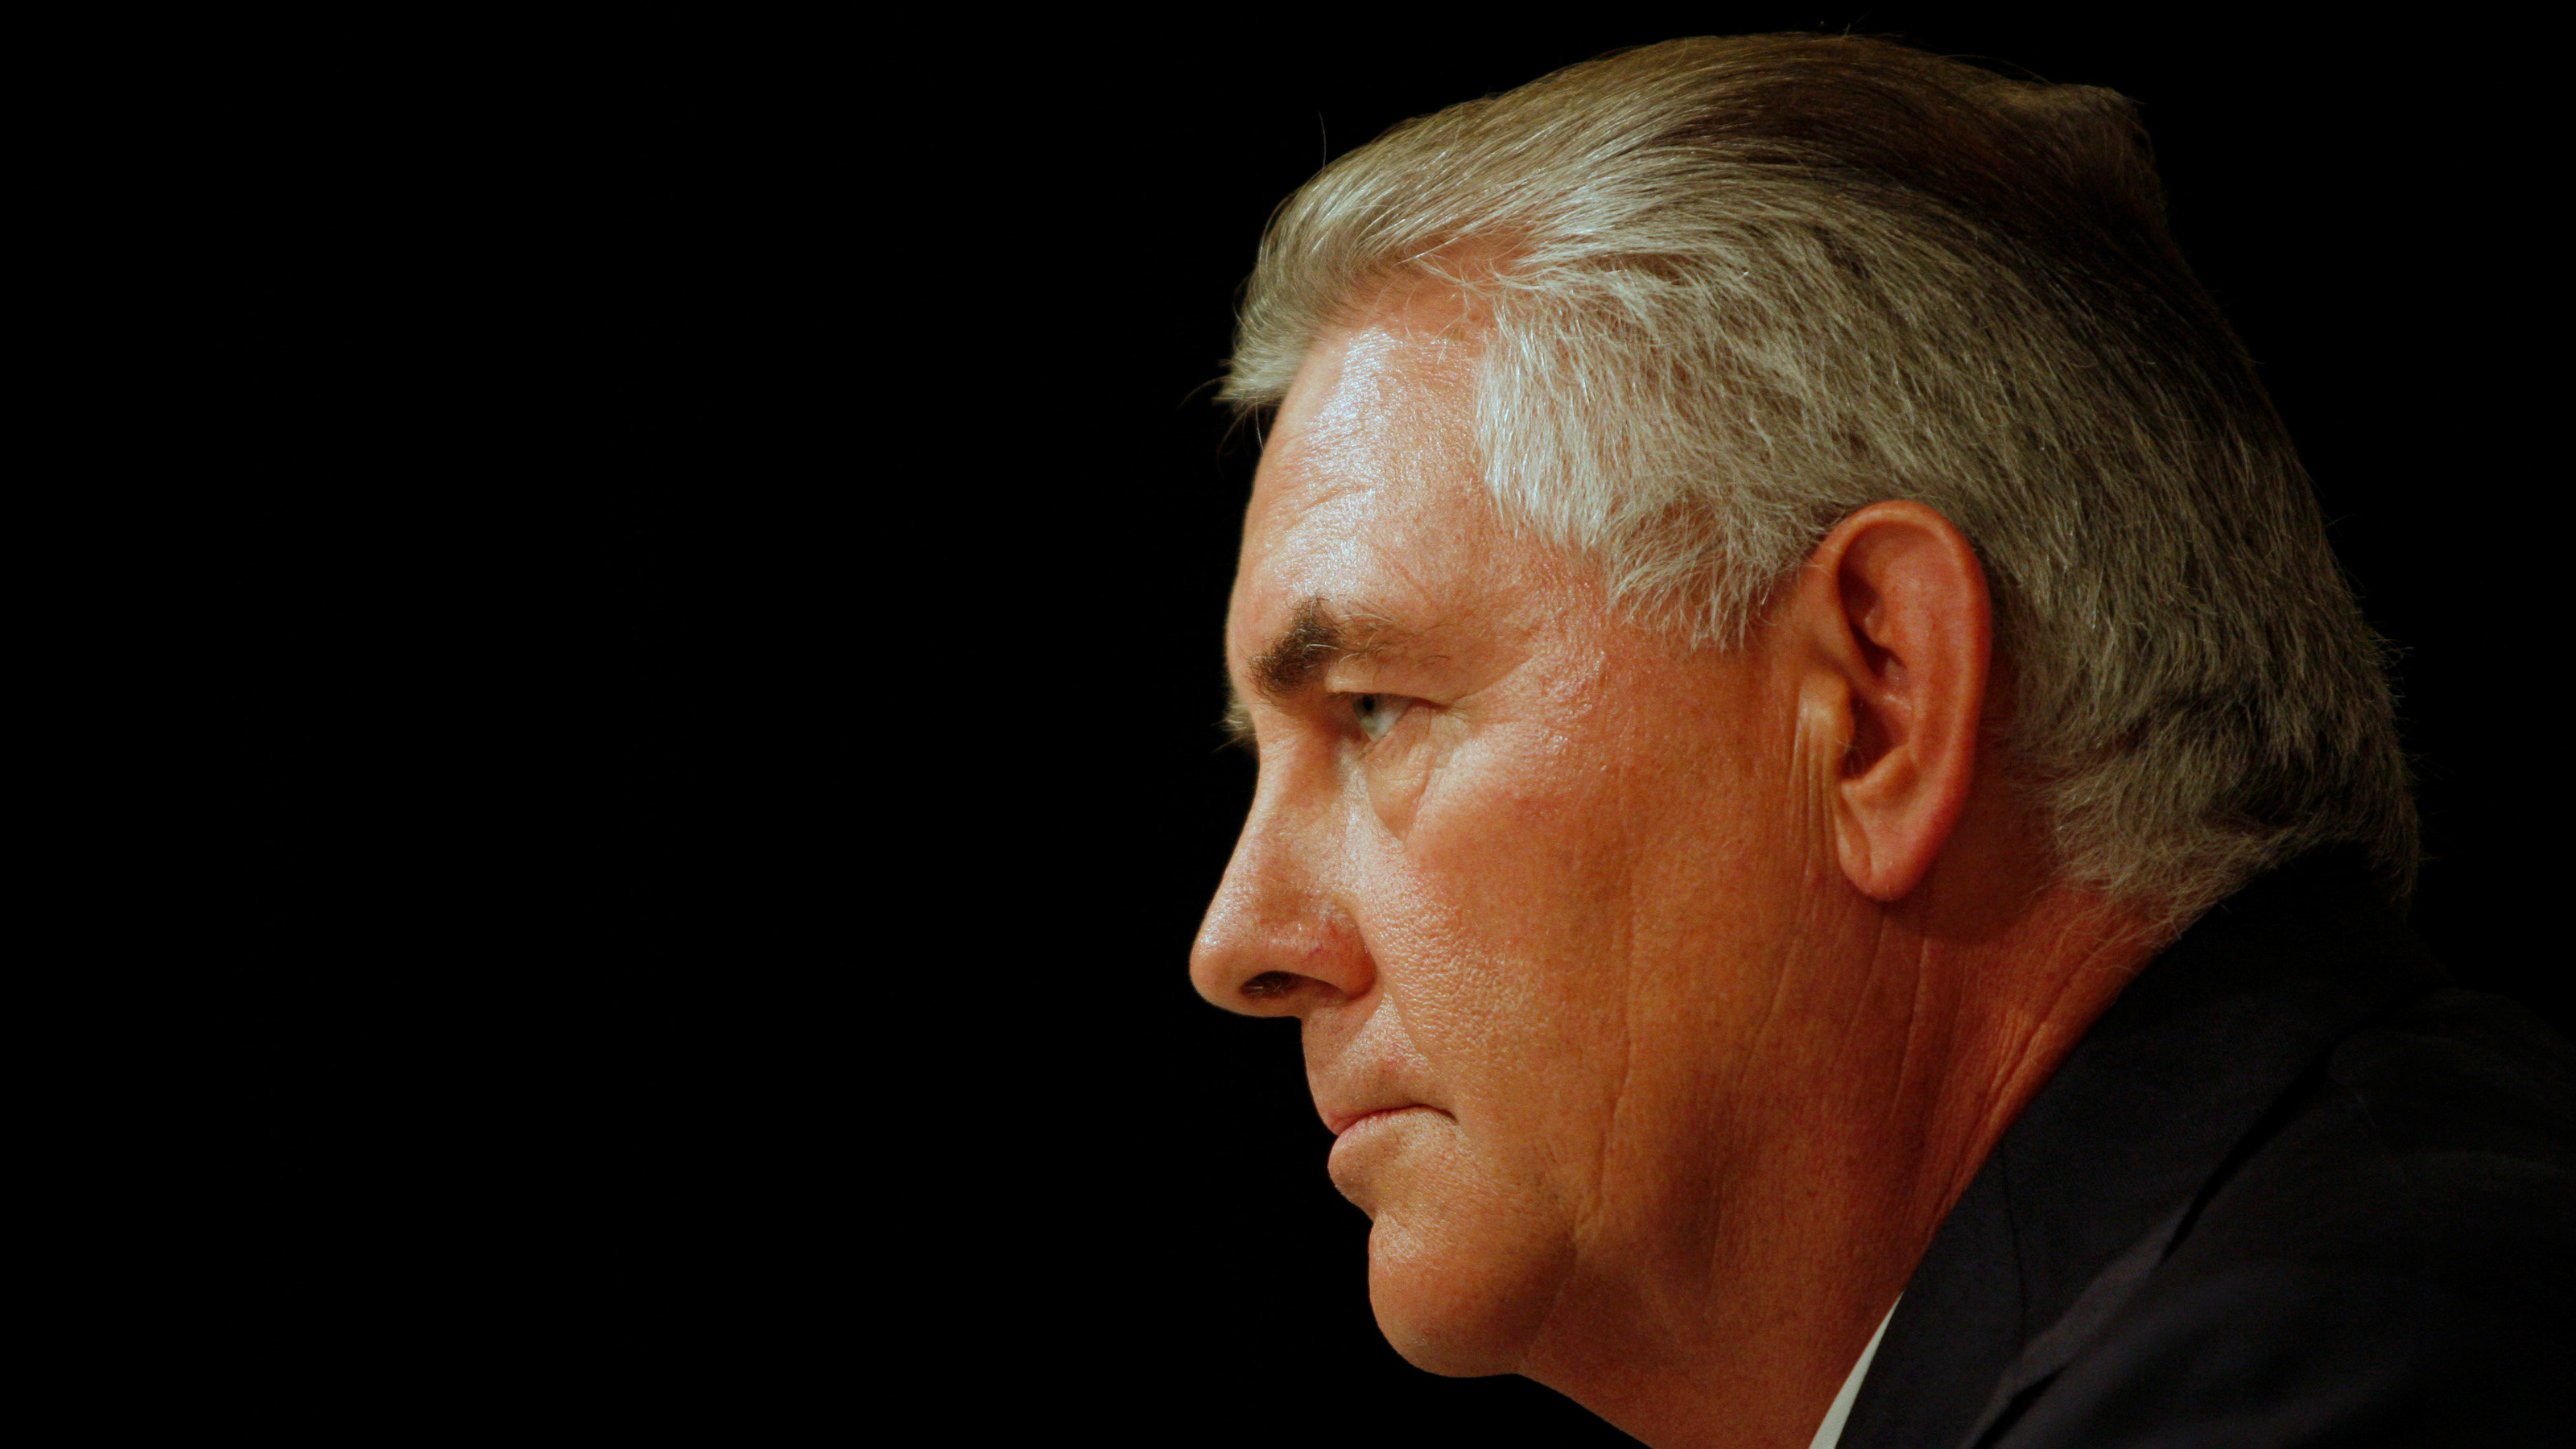 Exxon Mobil CEO Rex W. Tillerson addresses reporters at a news conference at the conclusion of the Exxon Mobil Shareholders Meeting in Dallas, Texas May 27, 2009.